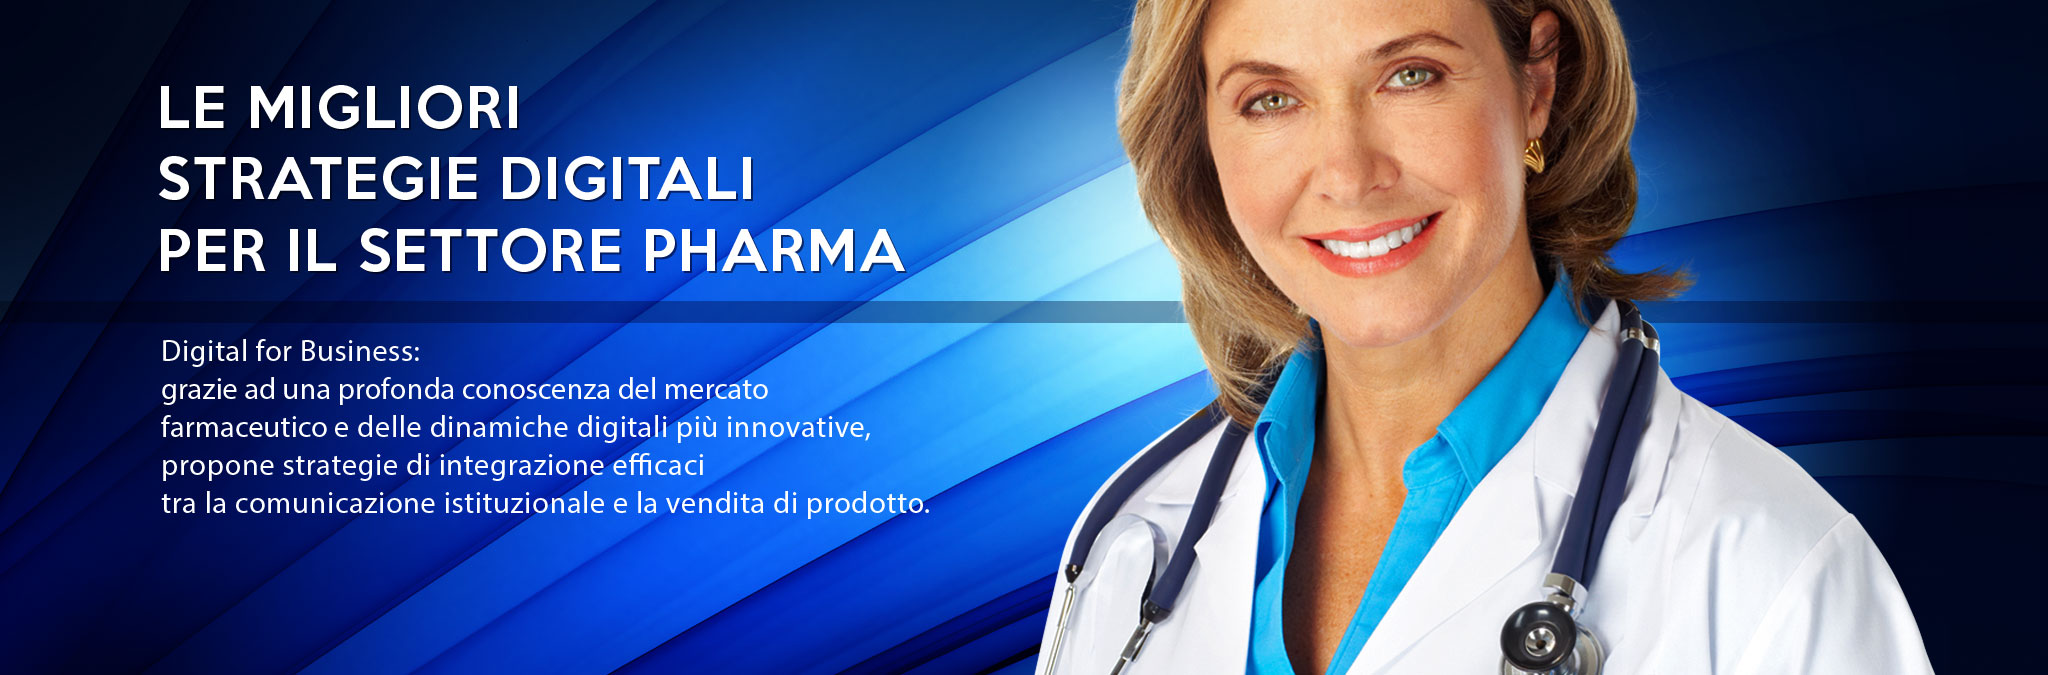 Digital for Business Farmaceutico